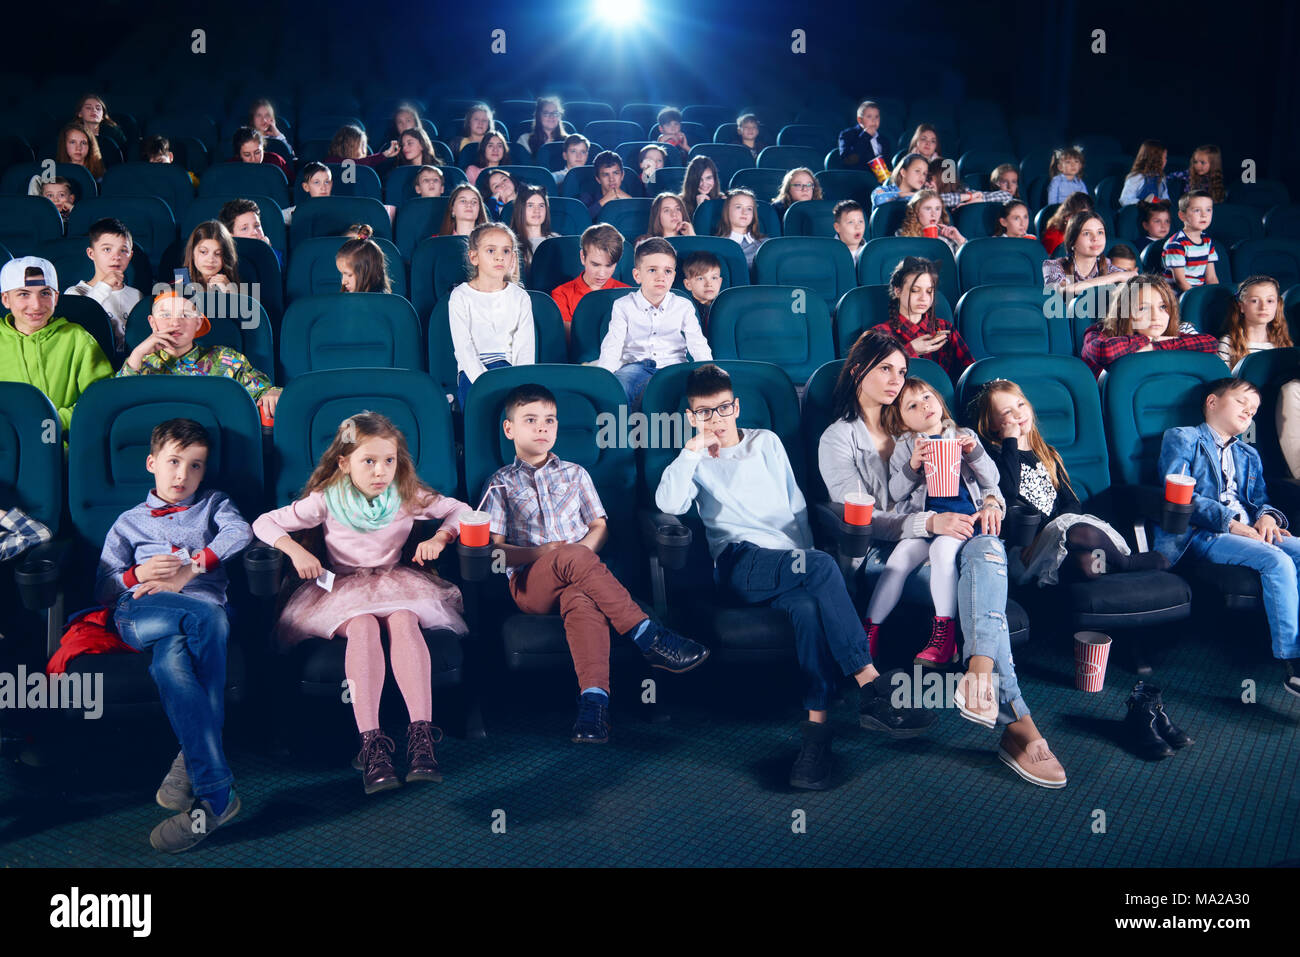 Frontview of people sitting in the cinema hall. Boys and girls watching interesting movie and looking very emotional, frightened and exited. Children wear colorful trendy clothes. - Stock Image